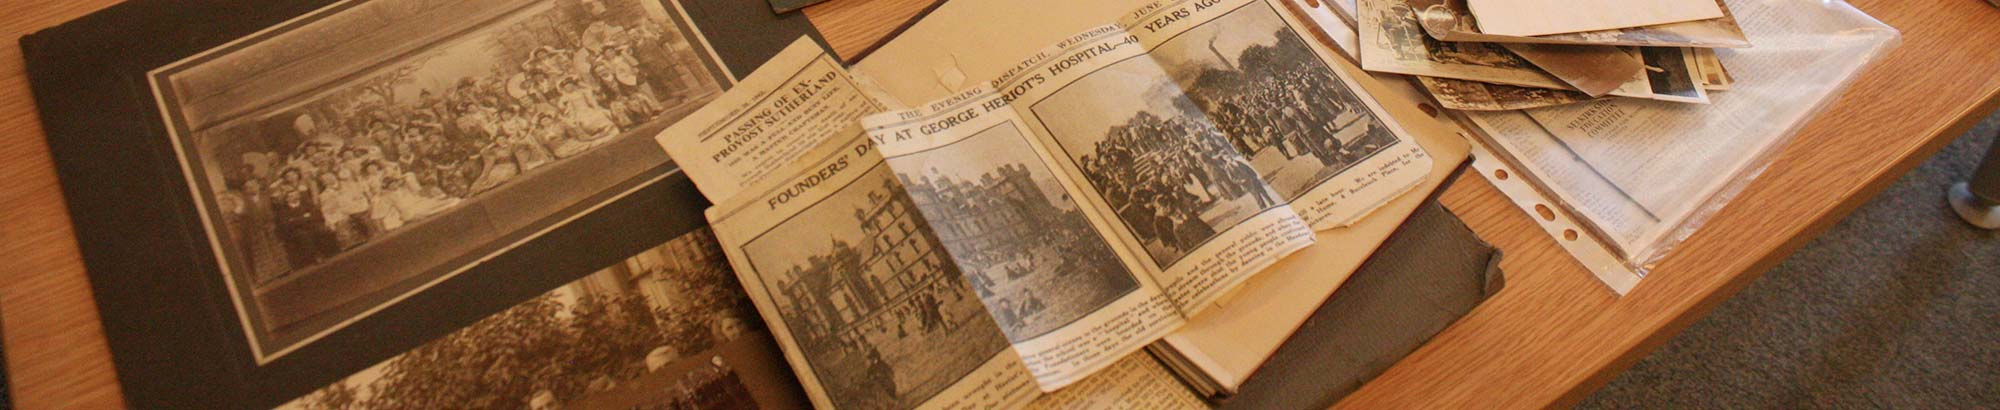 culture-archives-newspapers